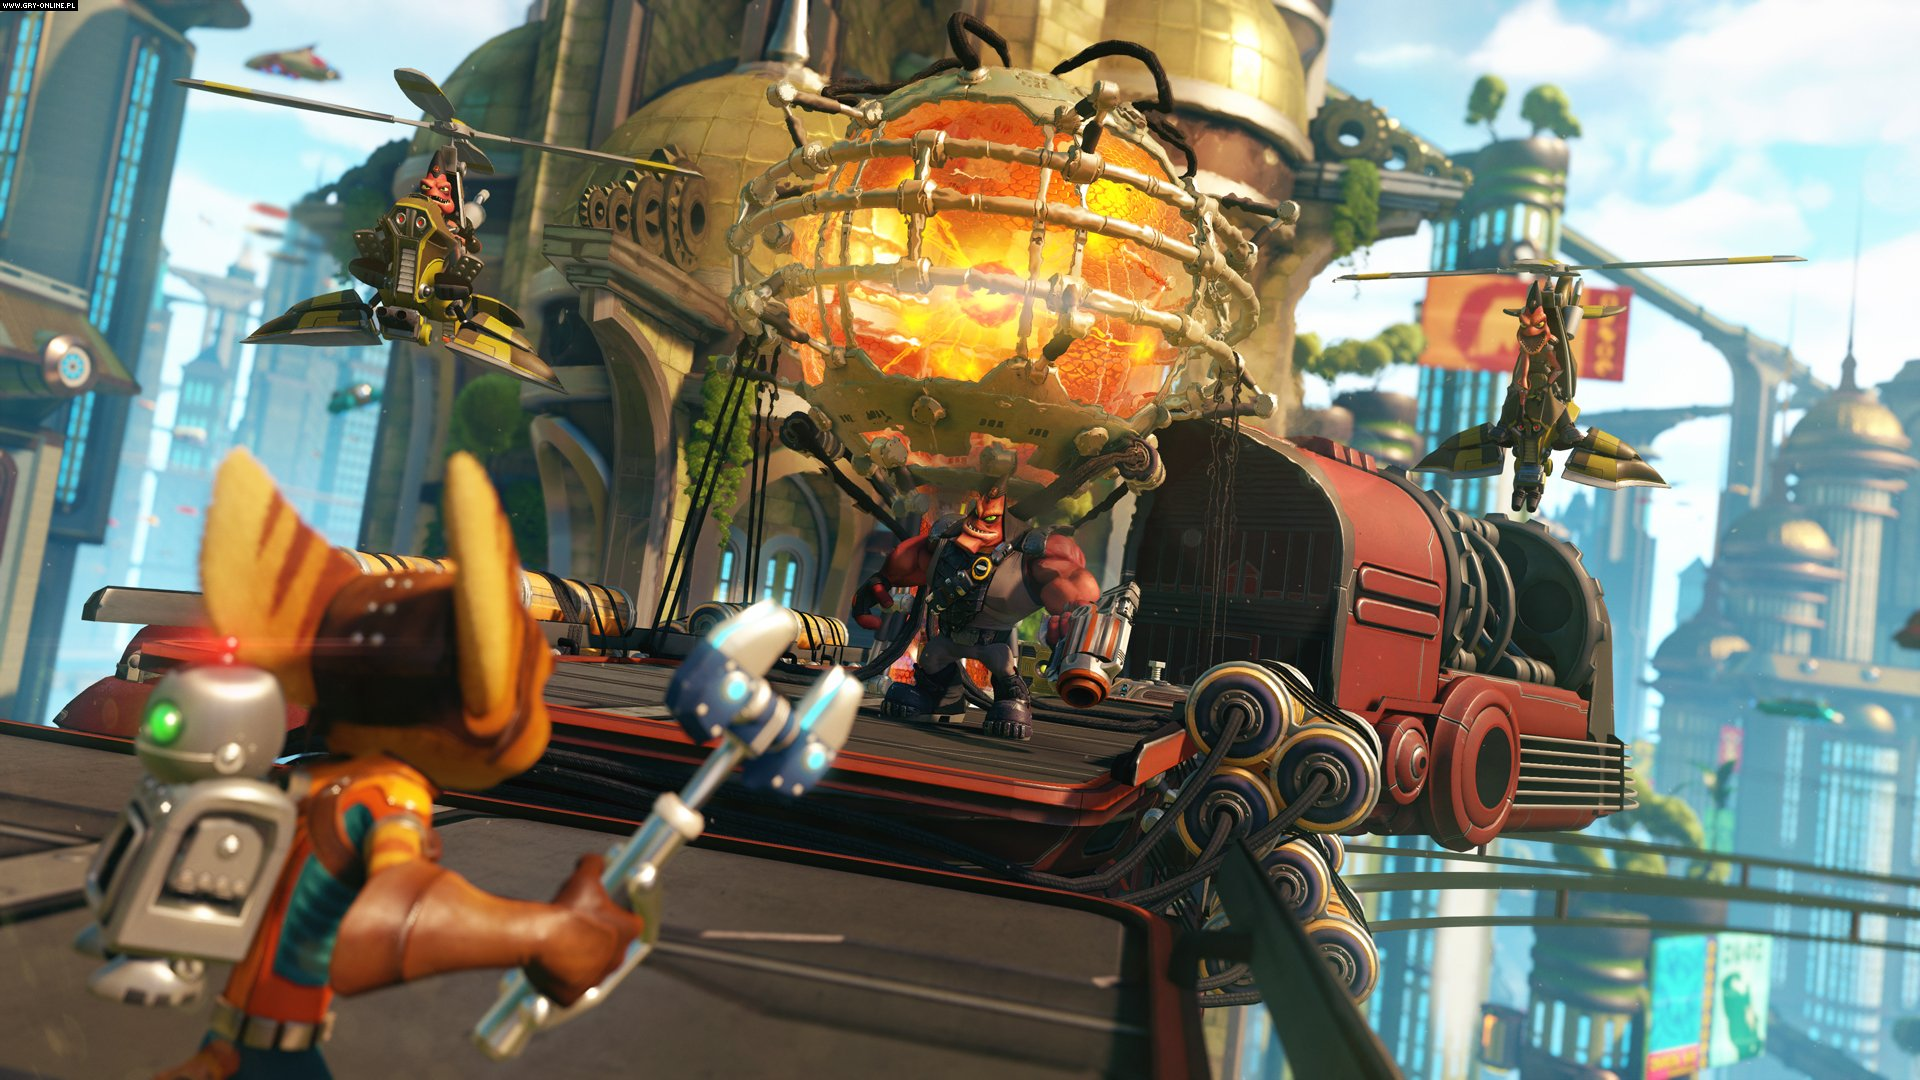 Ratchet & Clank PS4 Gry Screen 12/15, Insomniac Games, Sony Interactive Entertainment